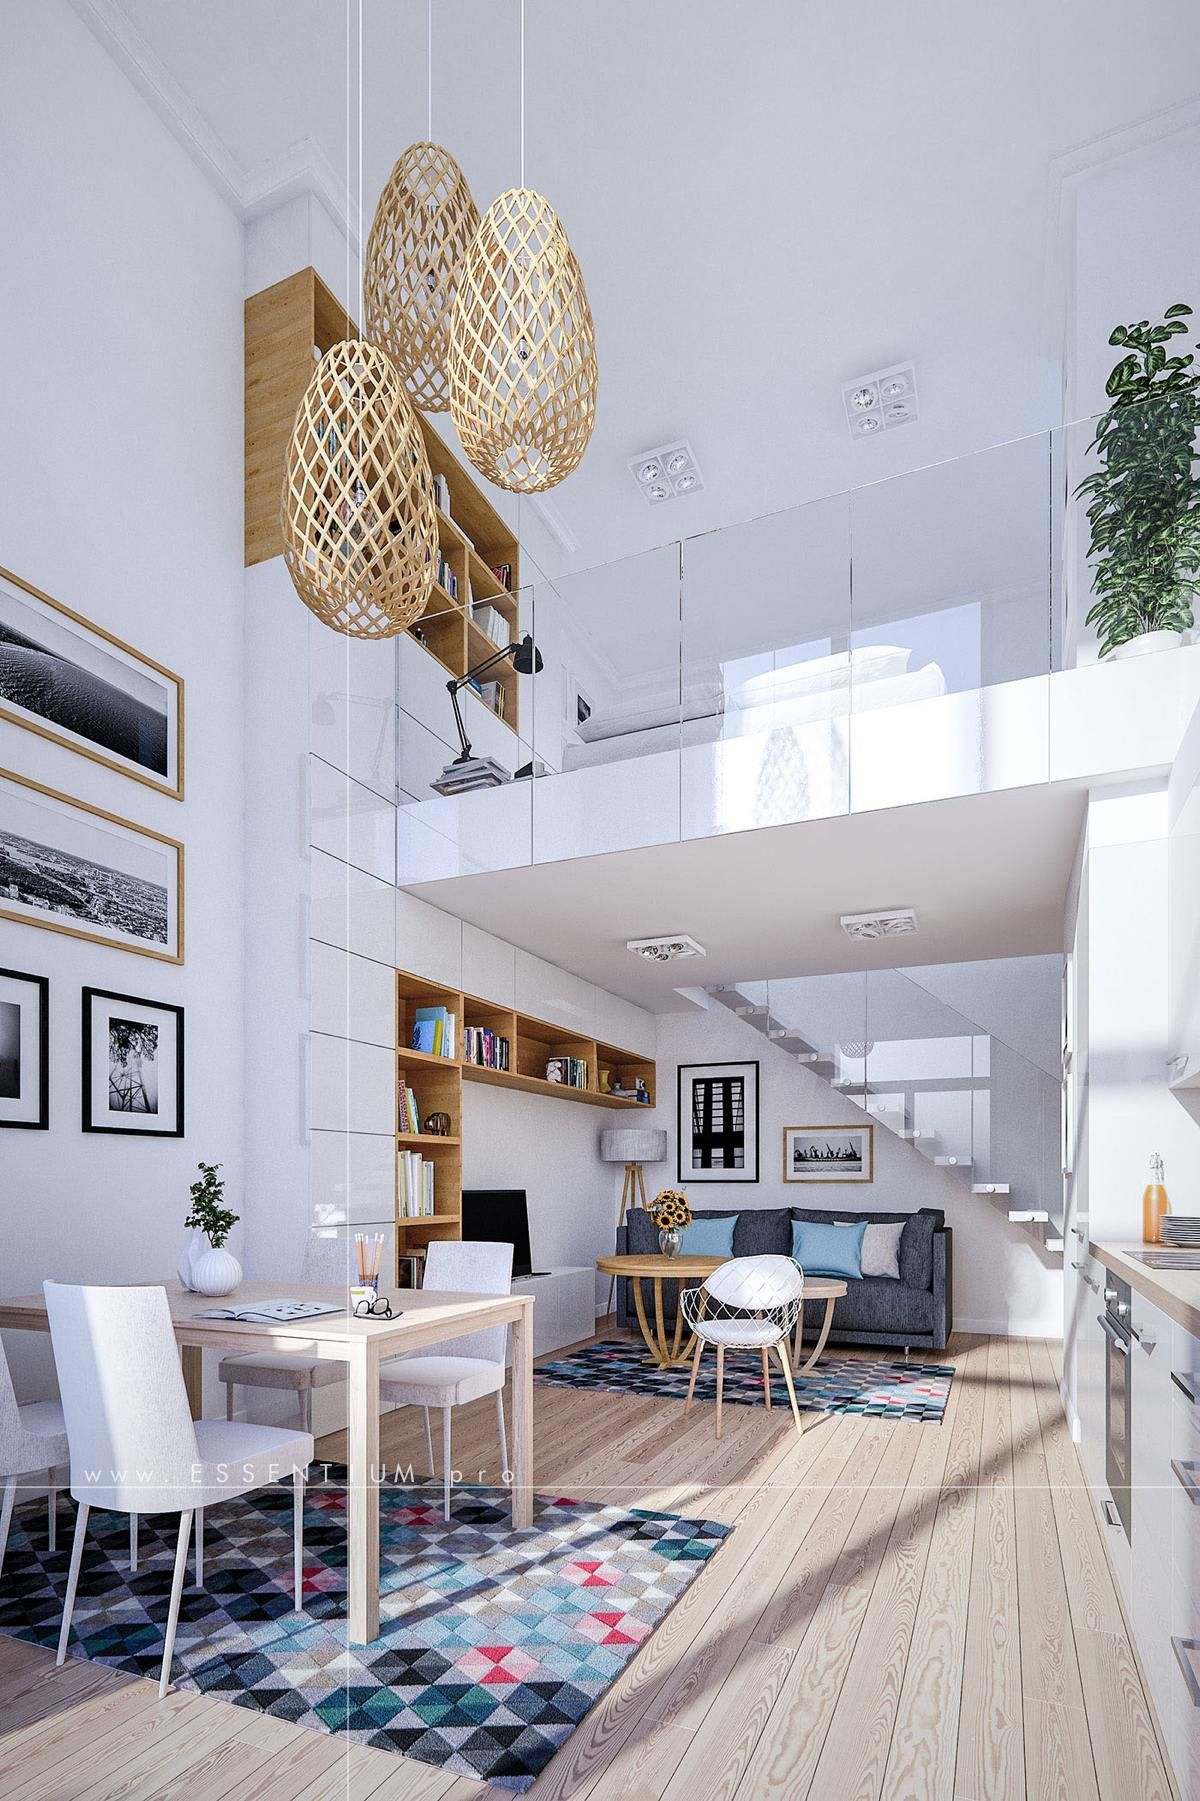 Home designing  via small homes that use lofts to gain more floor also rh ar pinterest